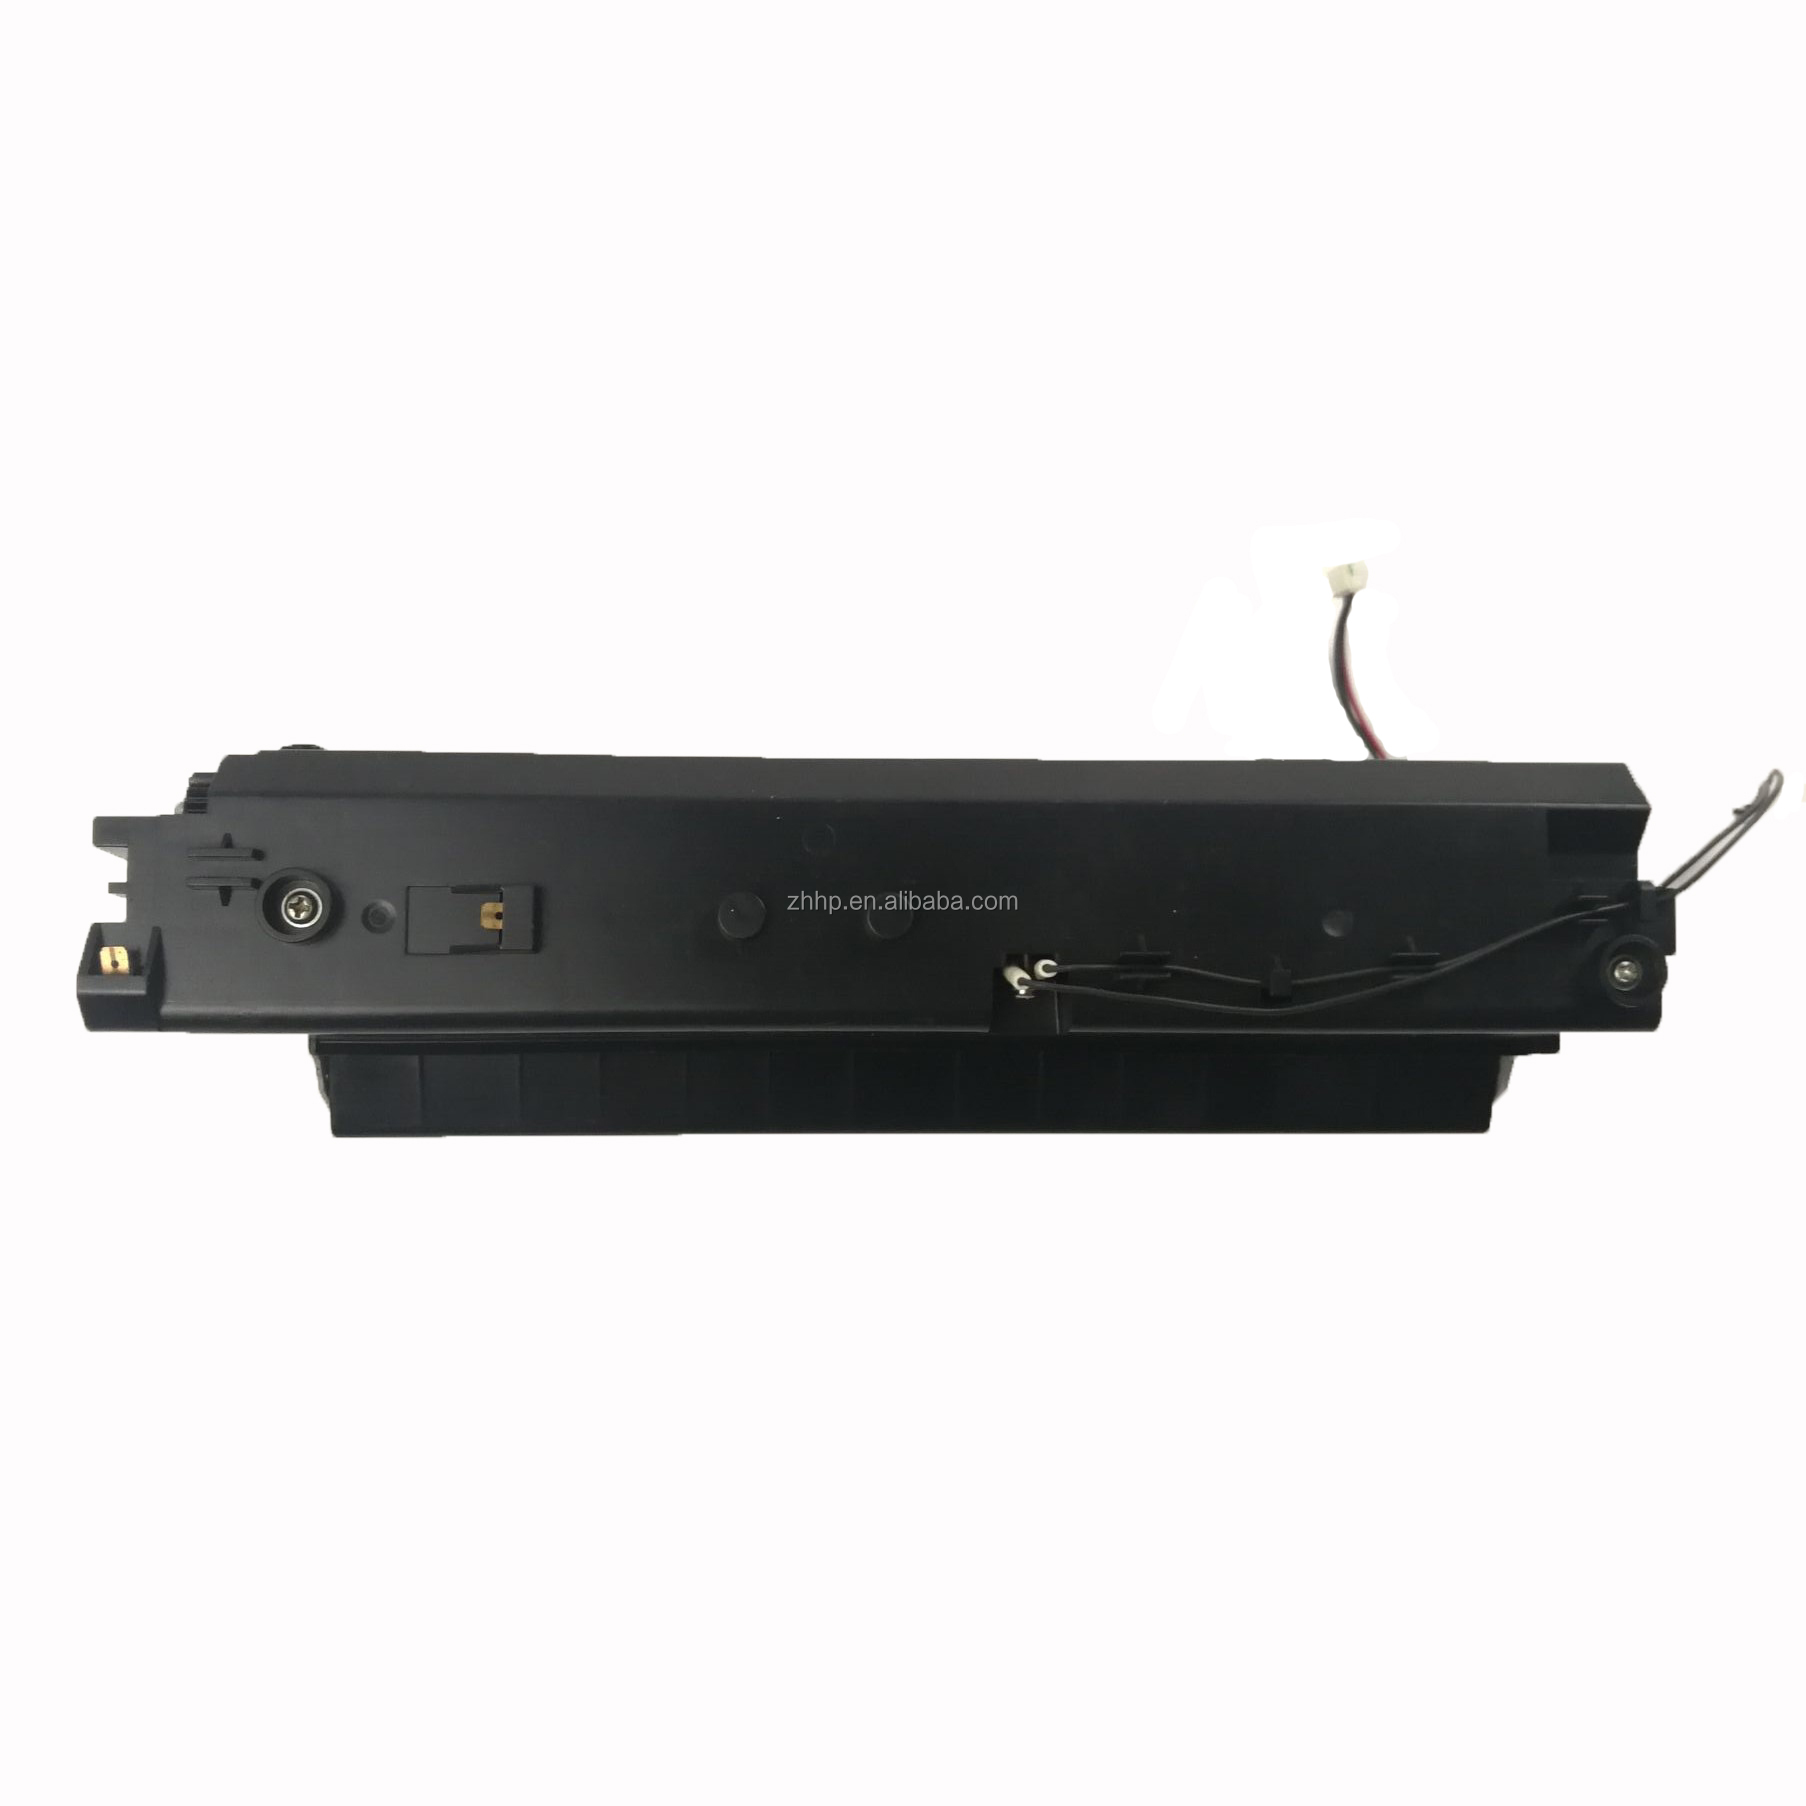 ZHHP 220V Fuser Unit Assembly For Lexmark E230/232/234/238/240/330/332 /340/342 X203/204/340/342 Fusor 40X1301